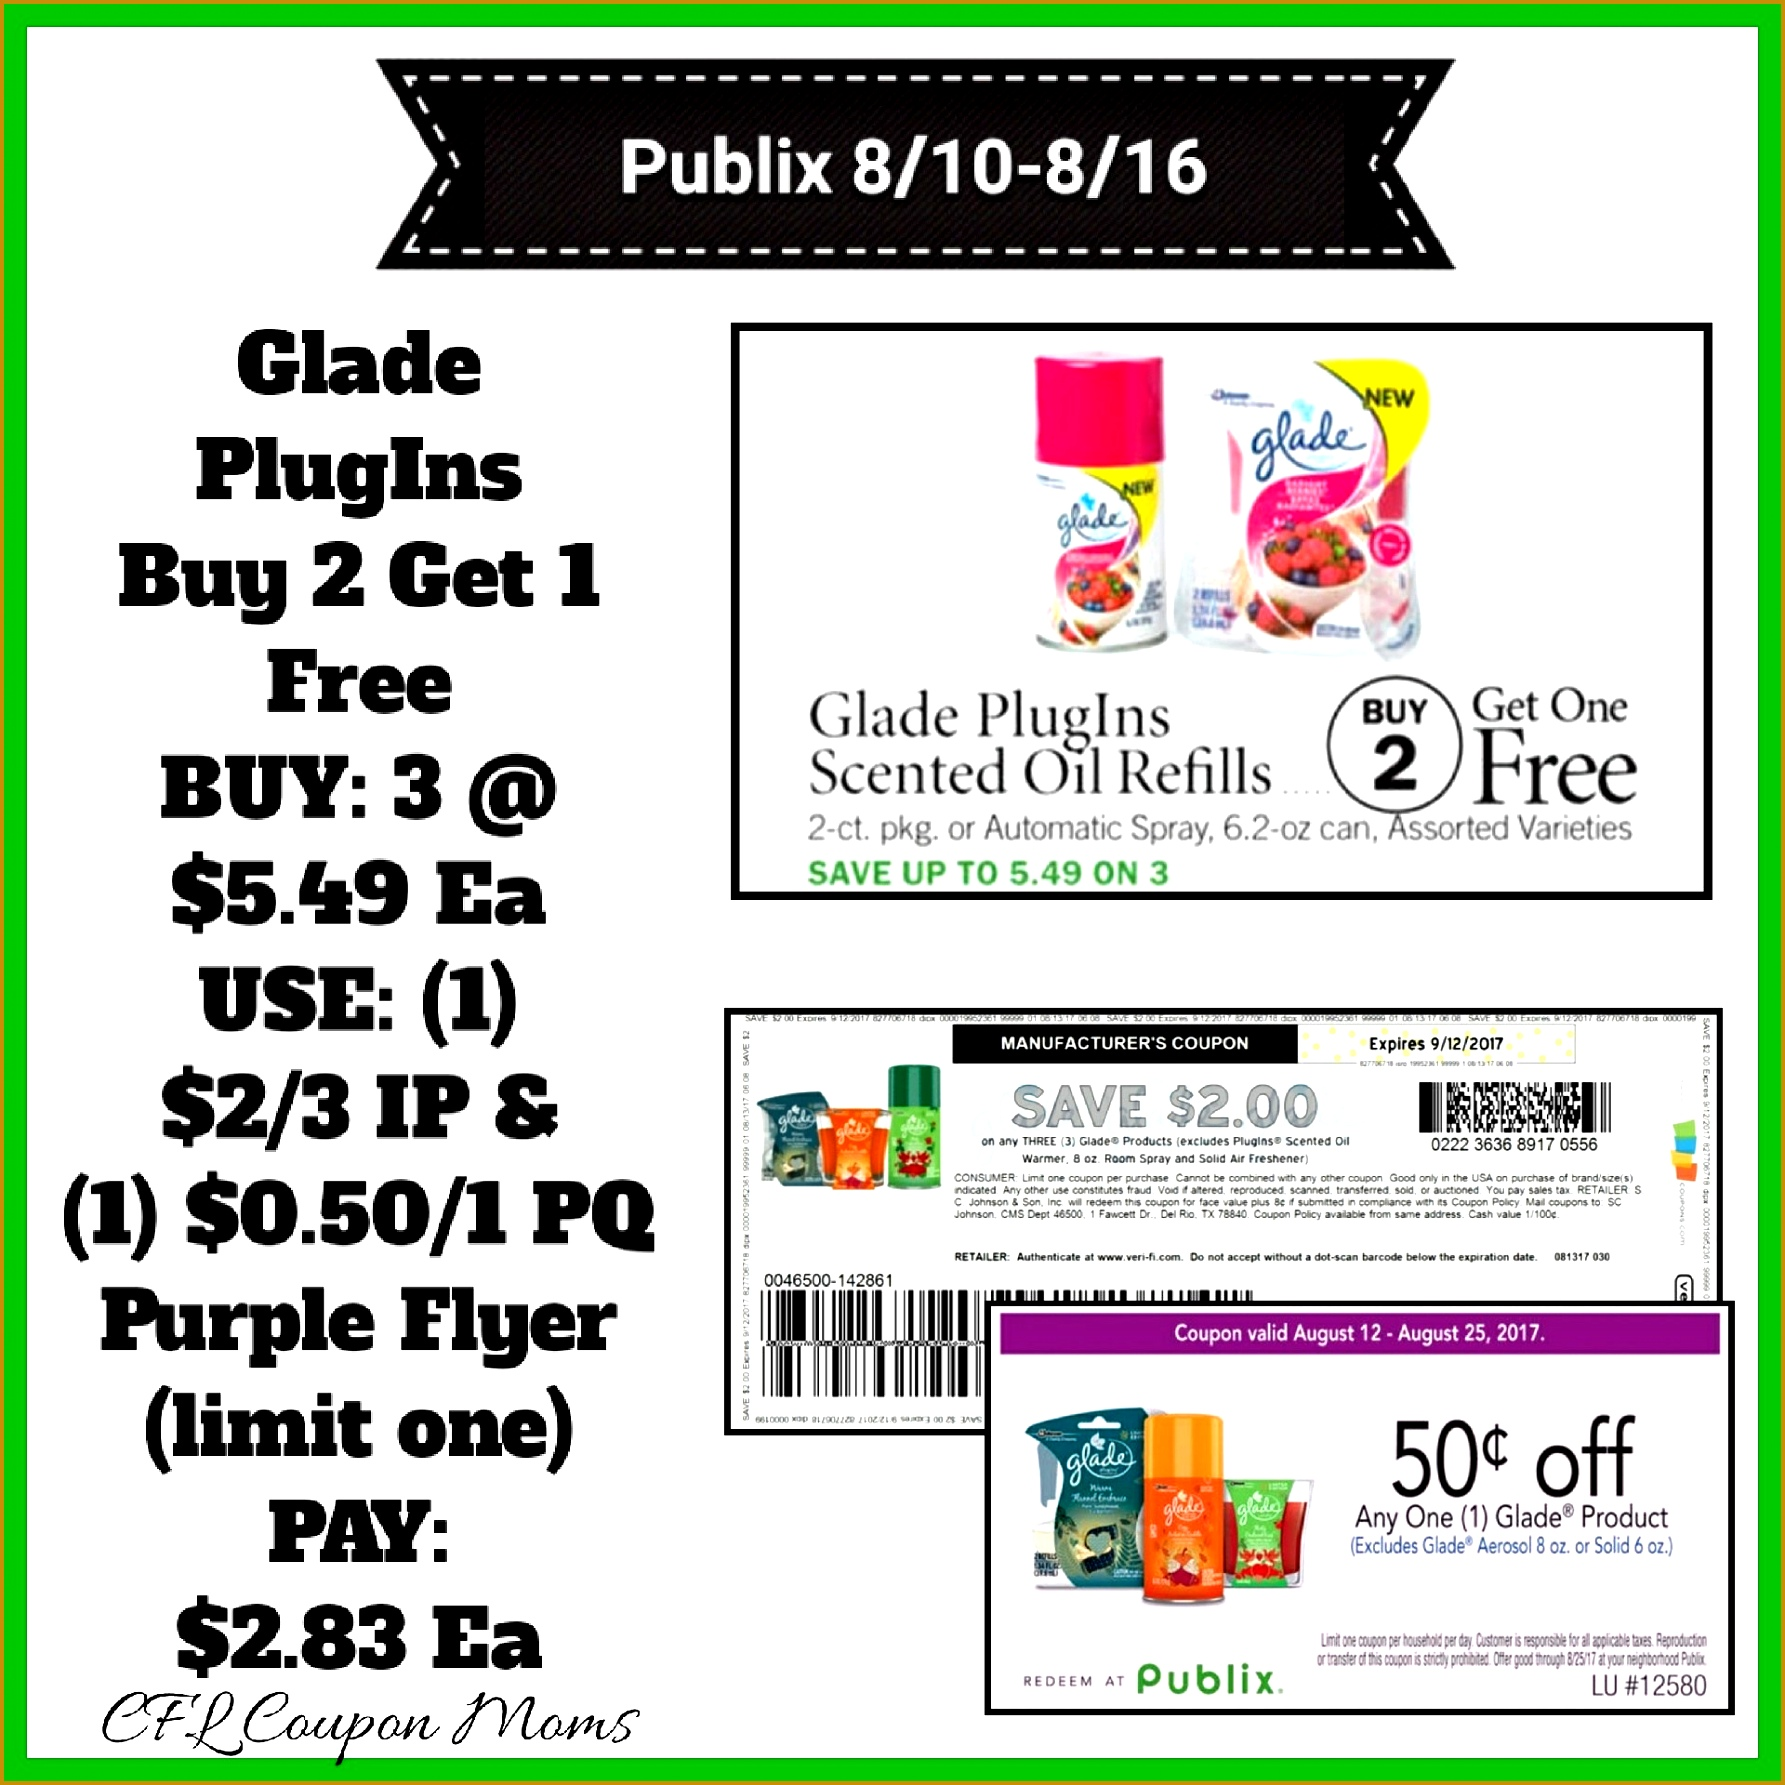 We had a new Printable Coupon pop up this morning along with a Publix Coupon found in the New Purple Flyer 17851785